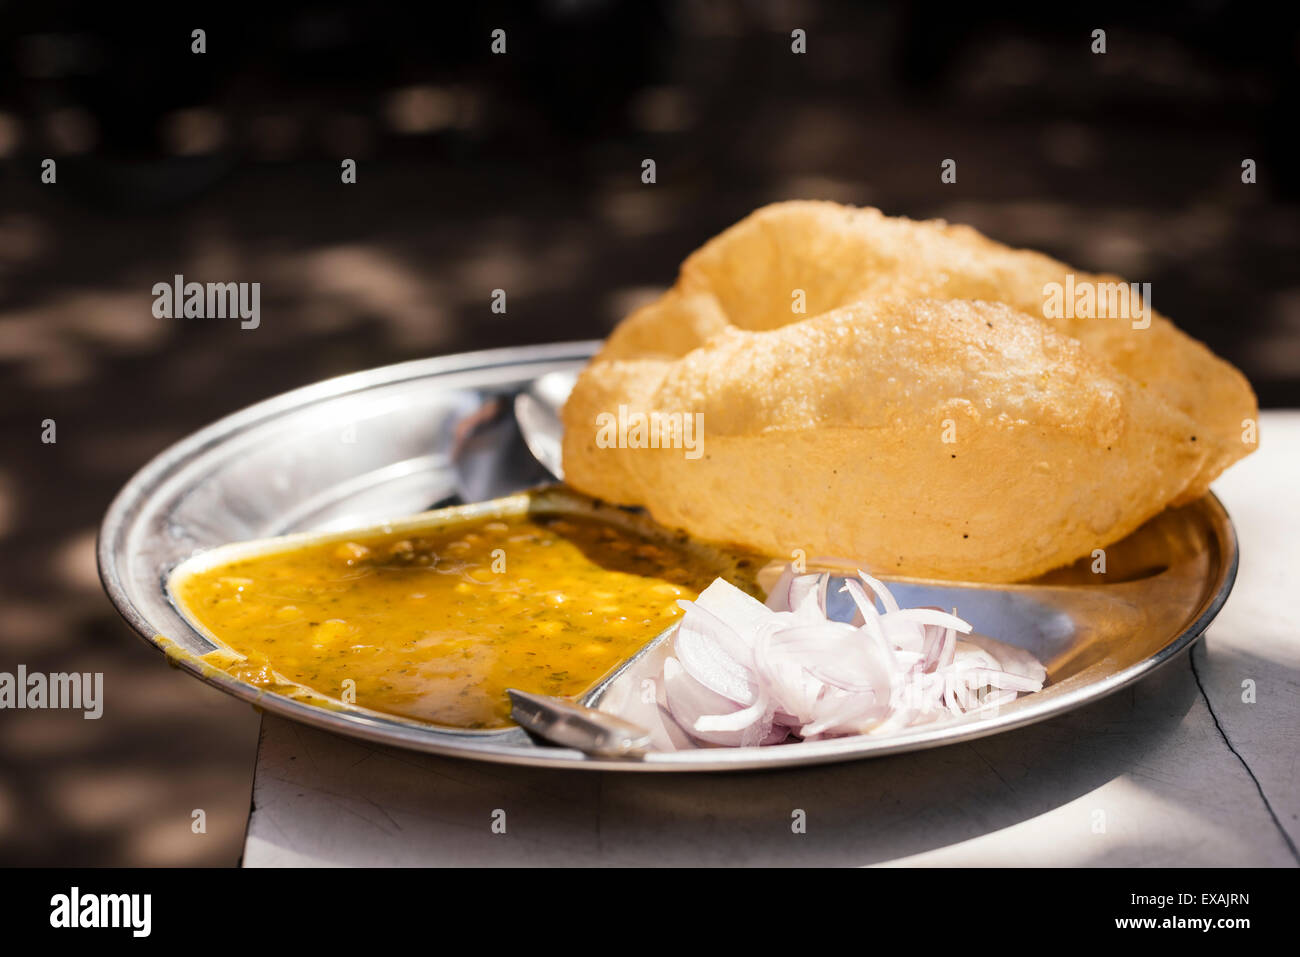 Chole Bhature Dish , Sector 7, Chandigarh, Punjab and Haryana Provinces, India, Asia - Stock Image